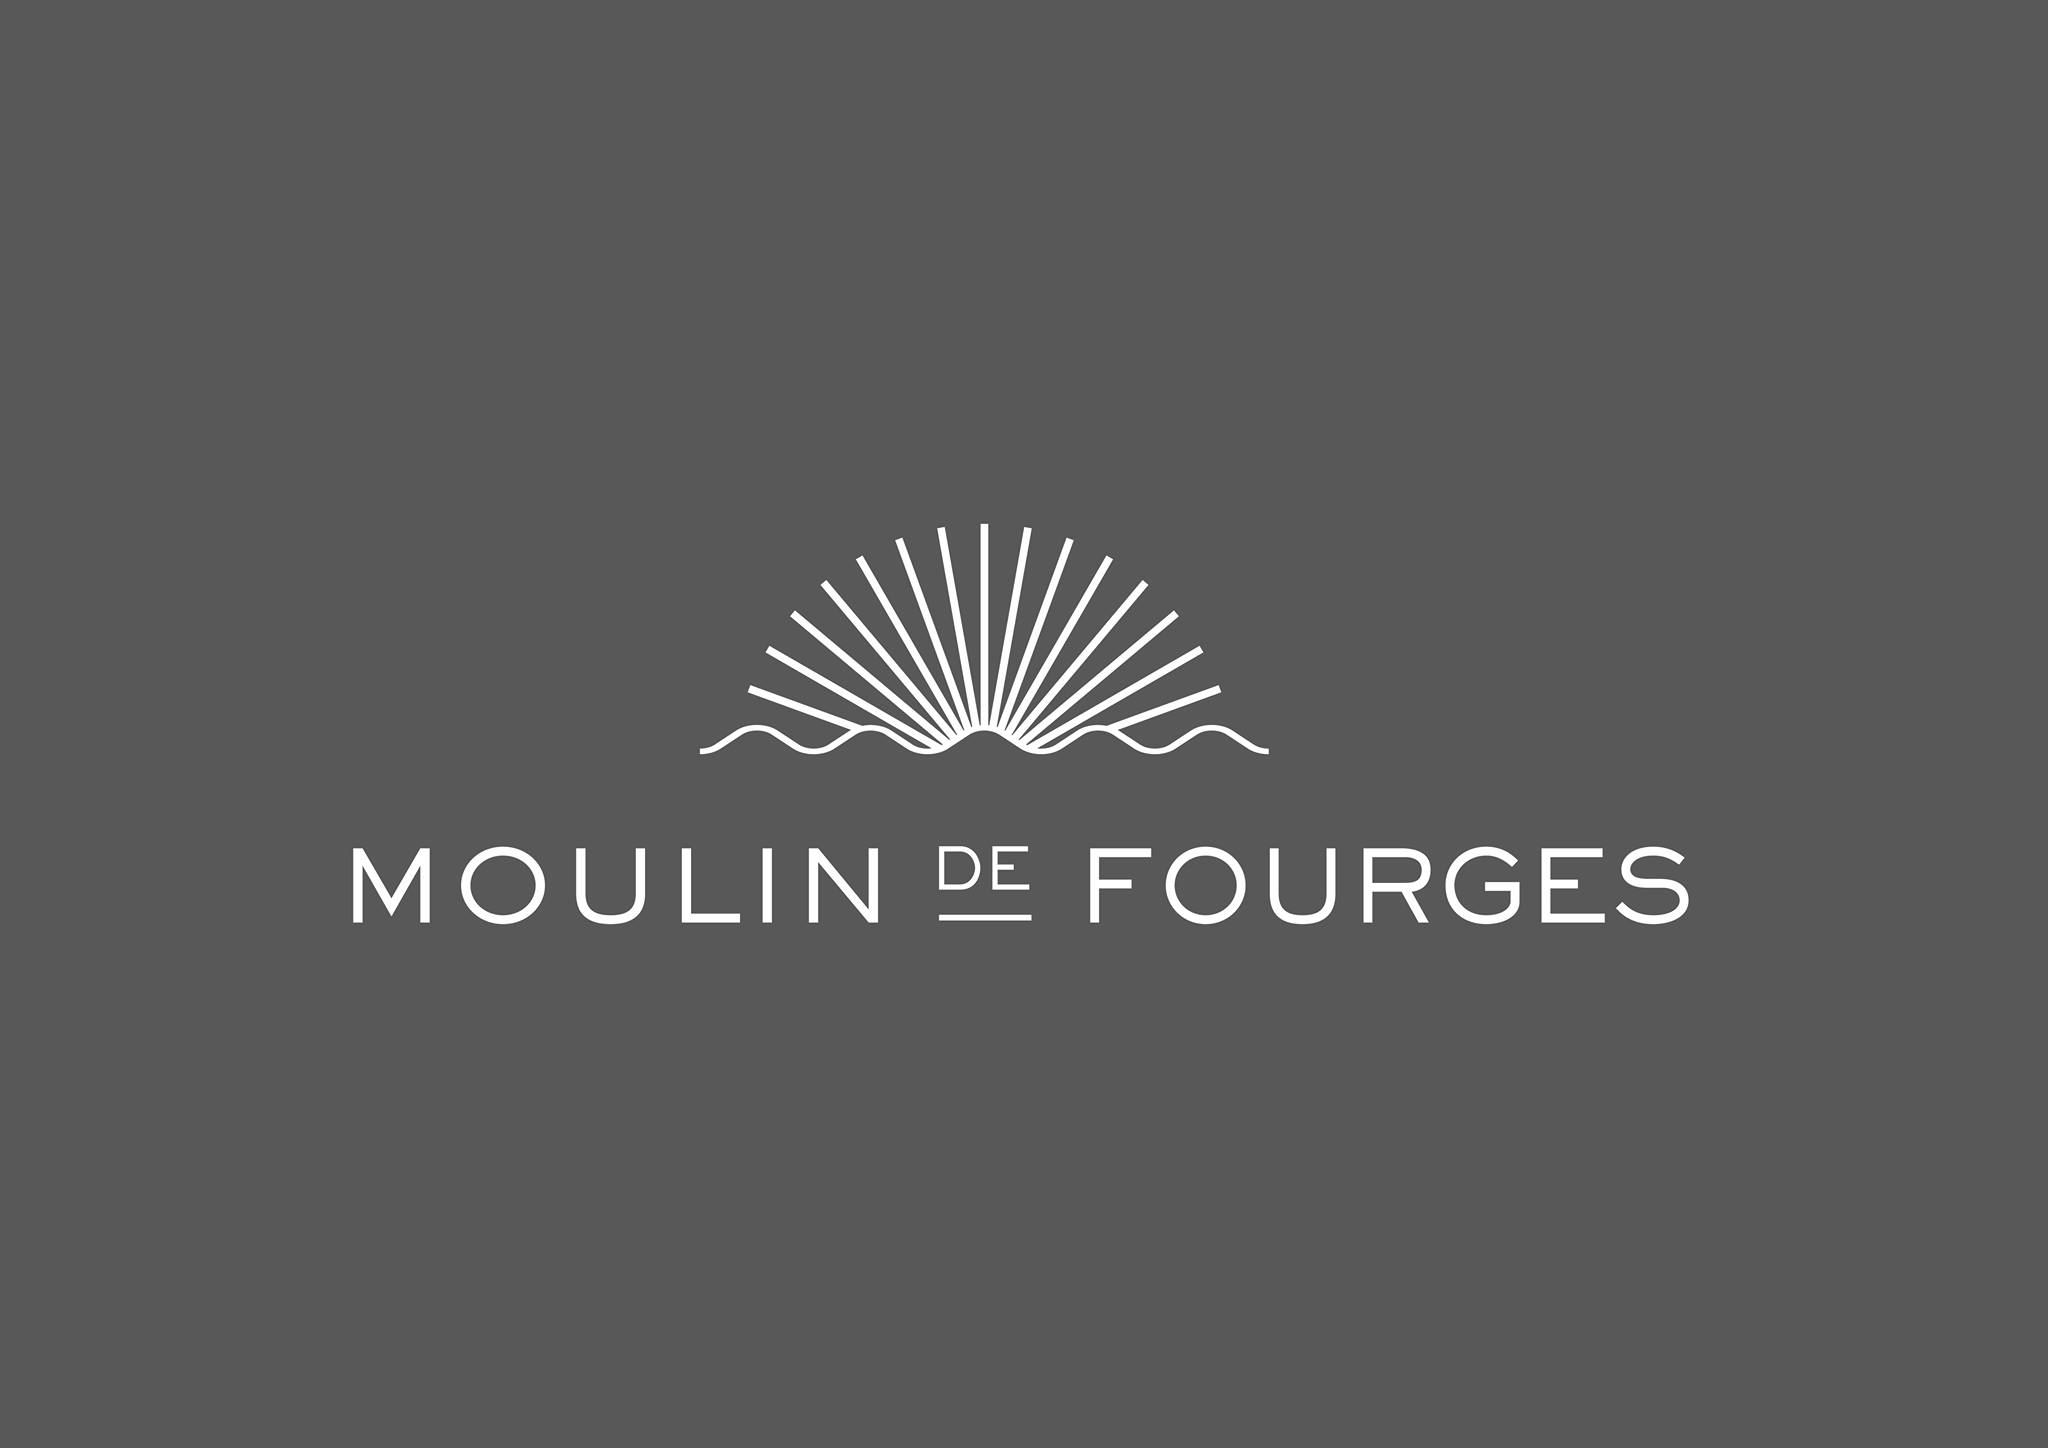 MOULIN DE FOURGES